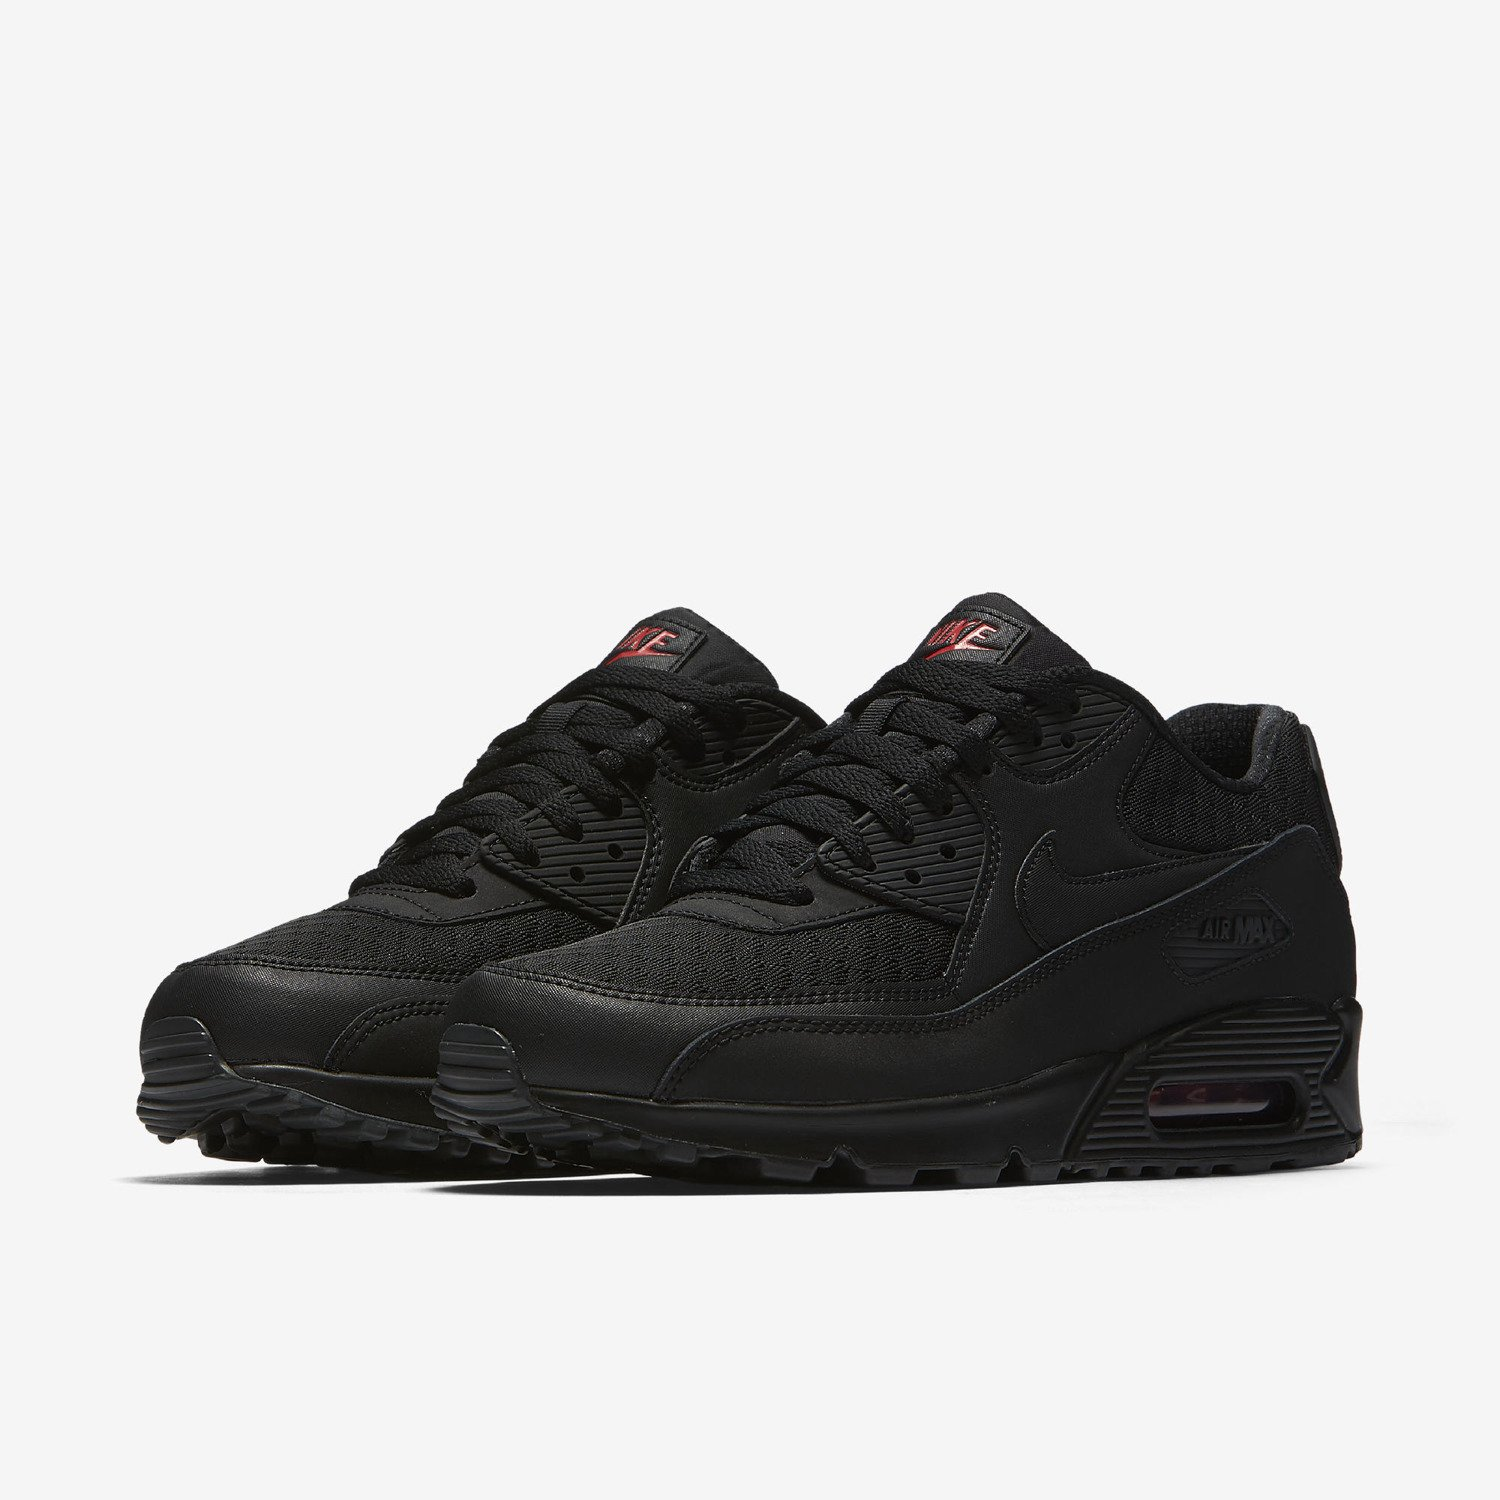 official photos e5bc2 8720a germany nike air max pacer black nike sb sale philippines shop df95d 72452